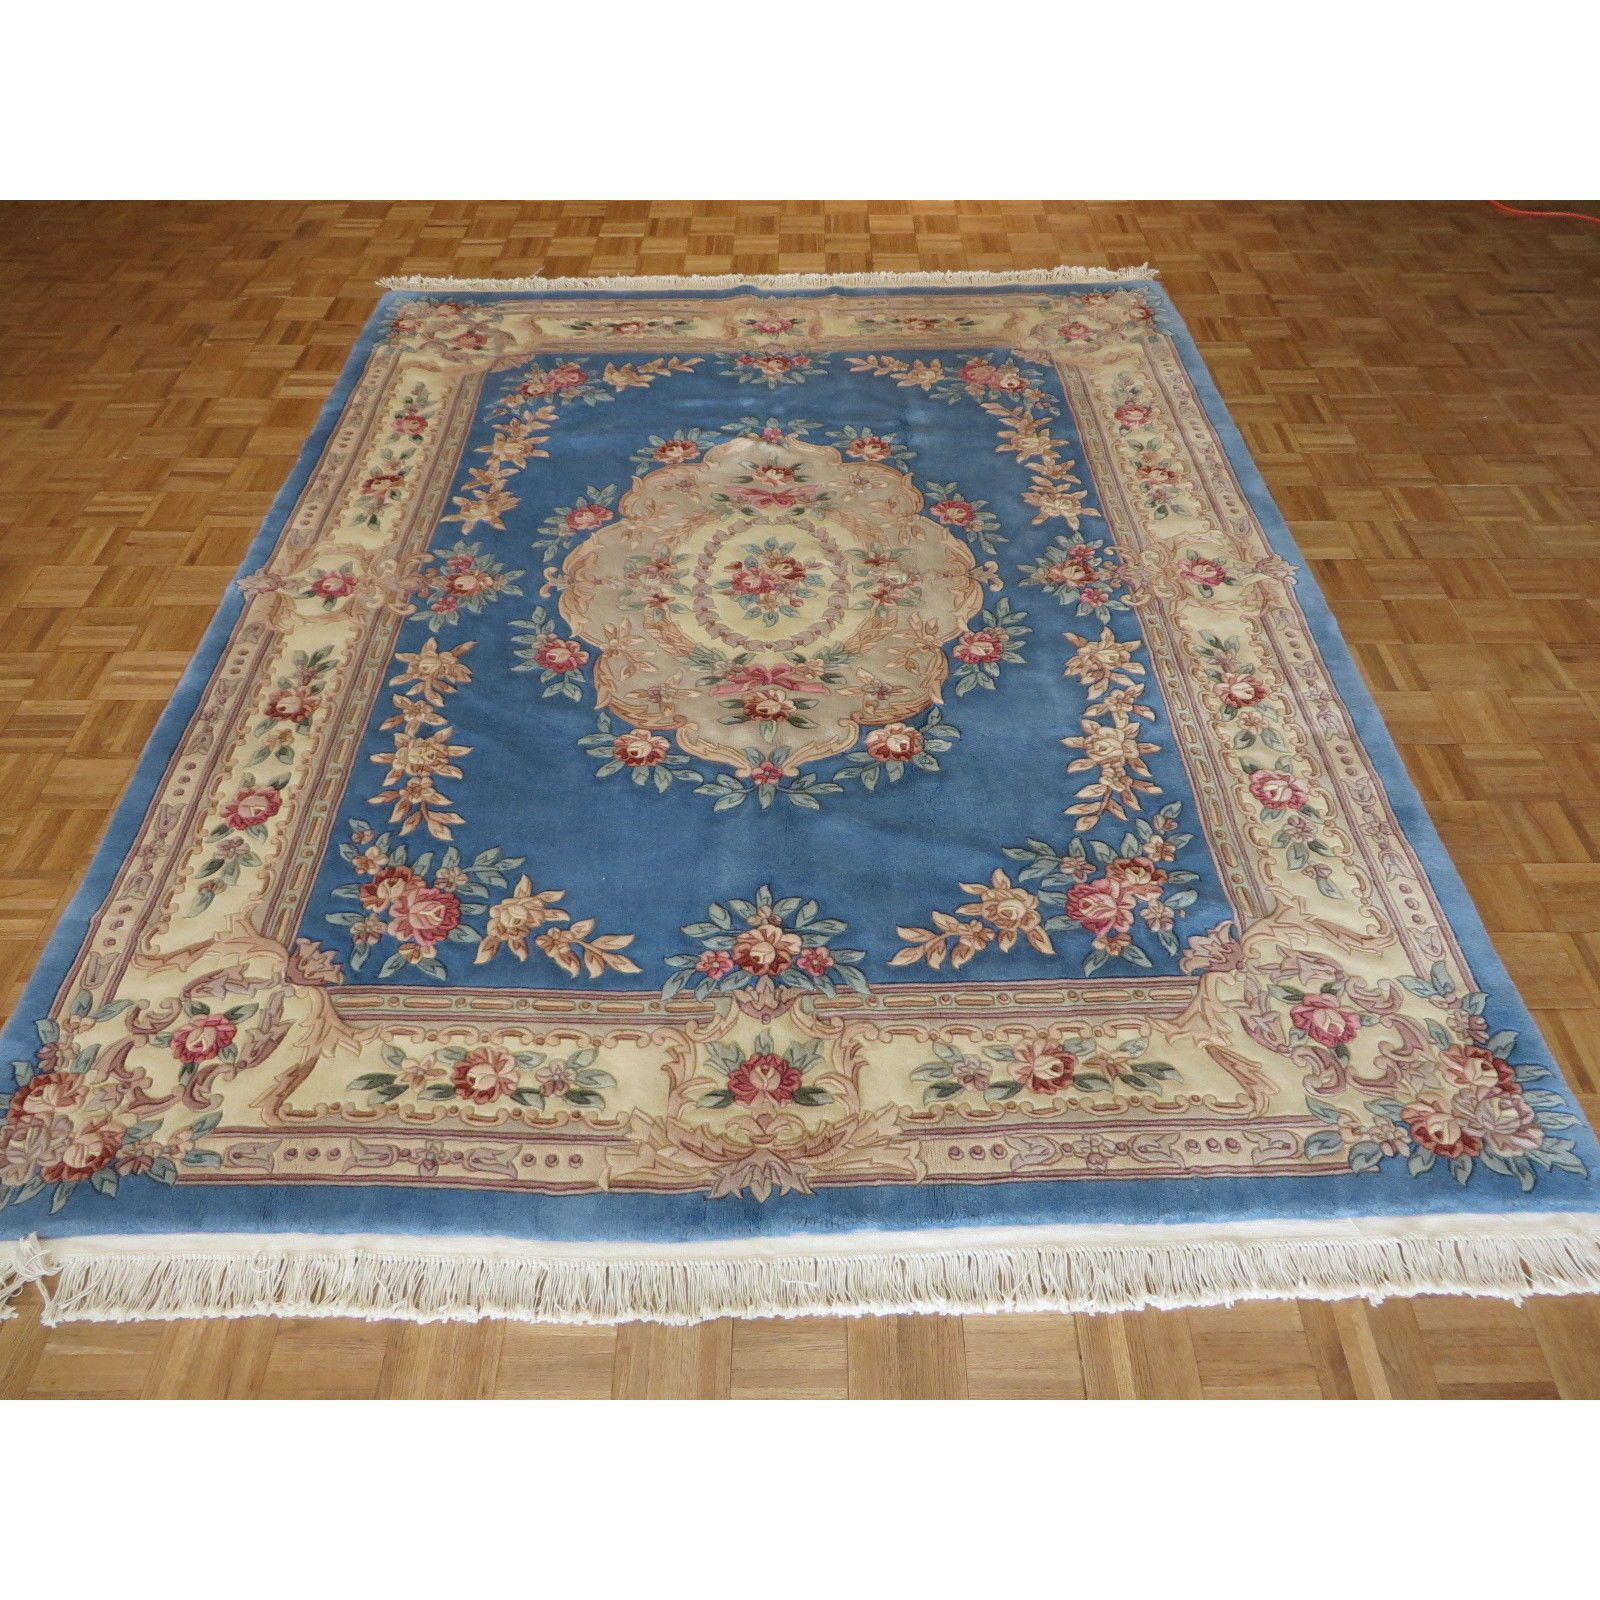 Aubusson Rugs Macys: 100-percent Wool Chinese Aubusson Hand-knotted Rug